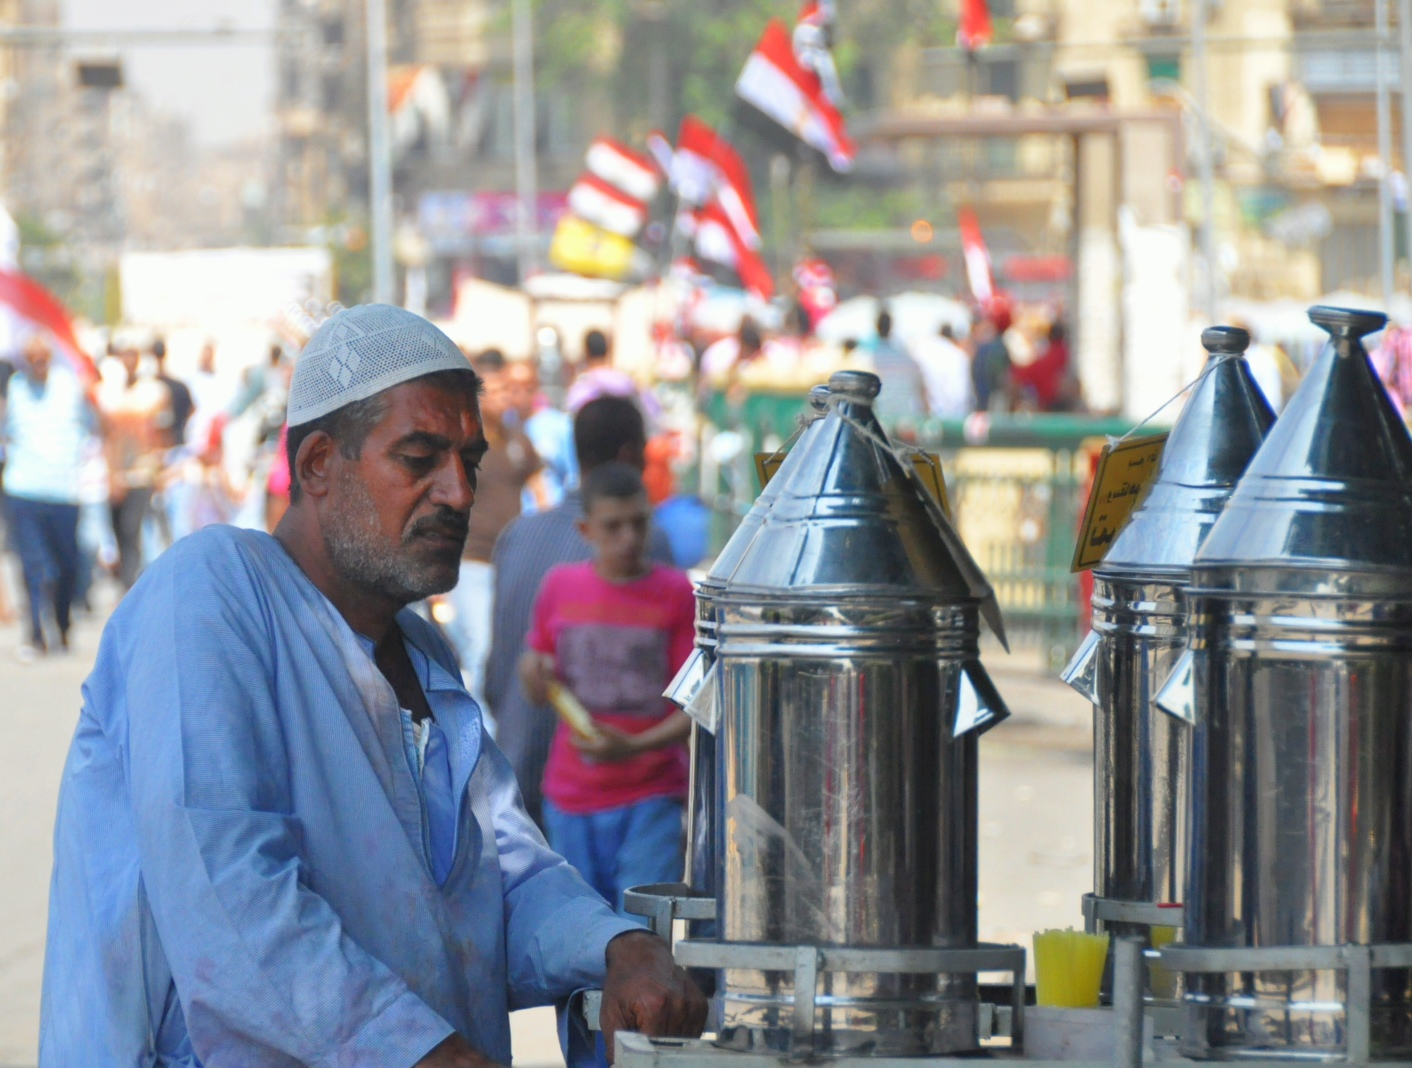 Traditional Egyptian drinks for sale in Tahrir Square, 1 July (Photo by Aaron T. Rose)